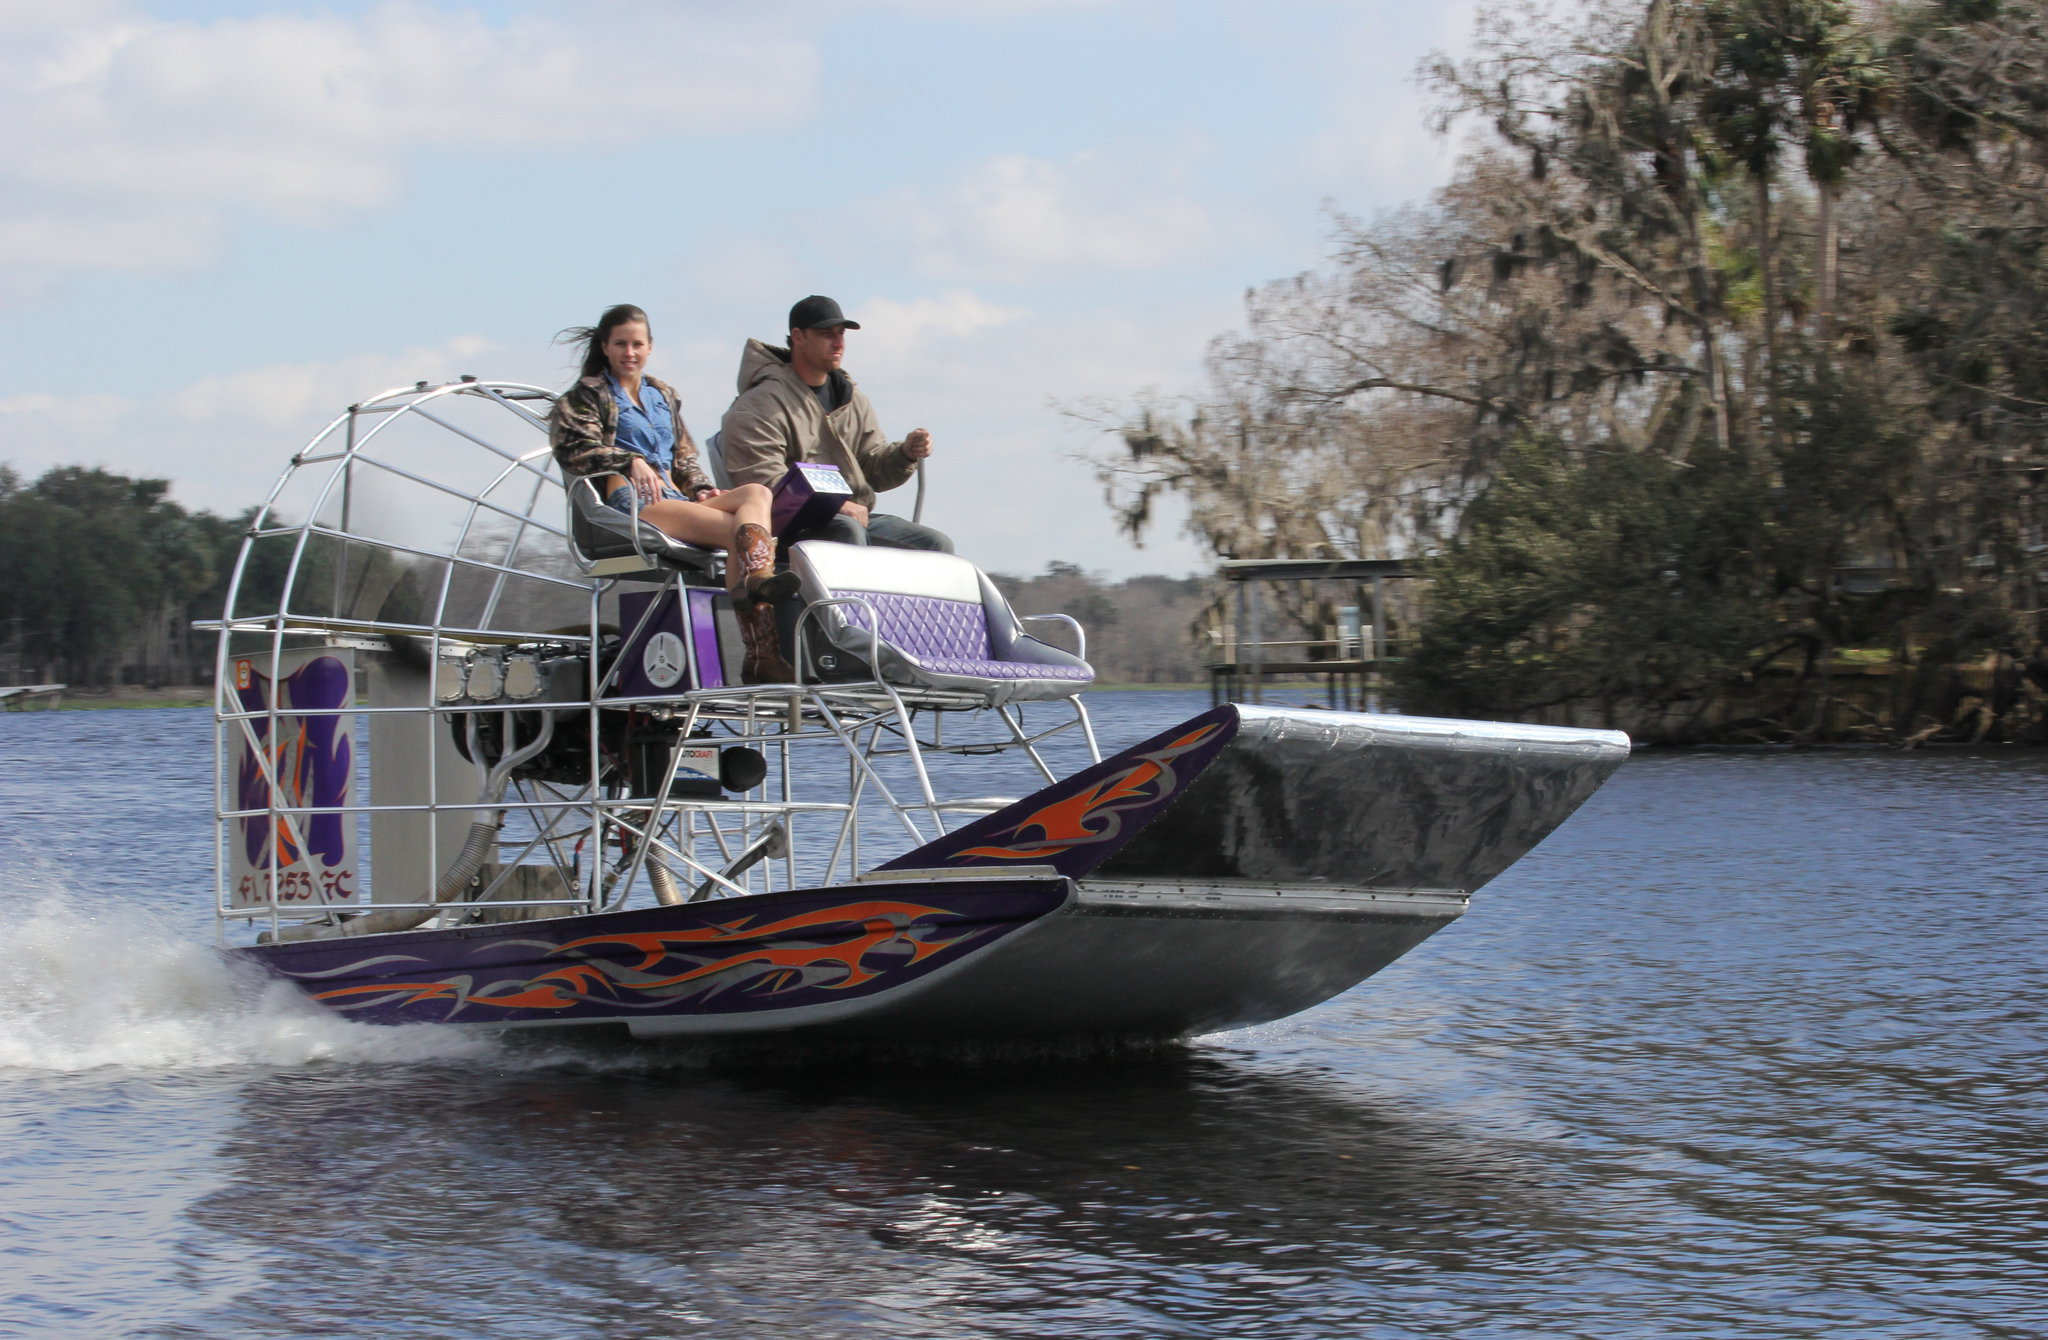 Nikole was excited about the ride. so she jumped on board first and Bret took off down the lake. This airboat hauls ass. It's fun watching it skim across the water.